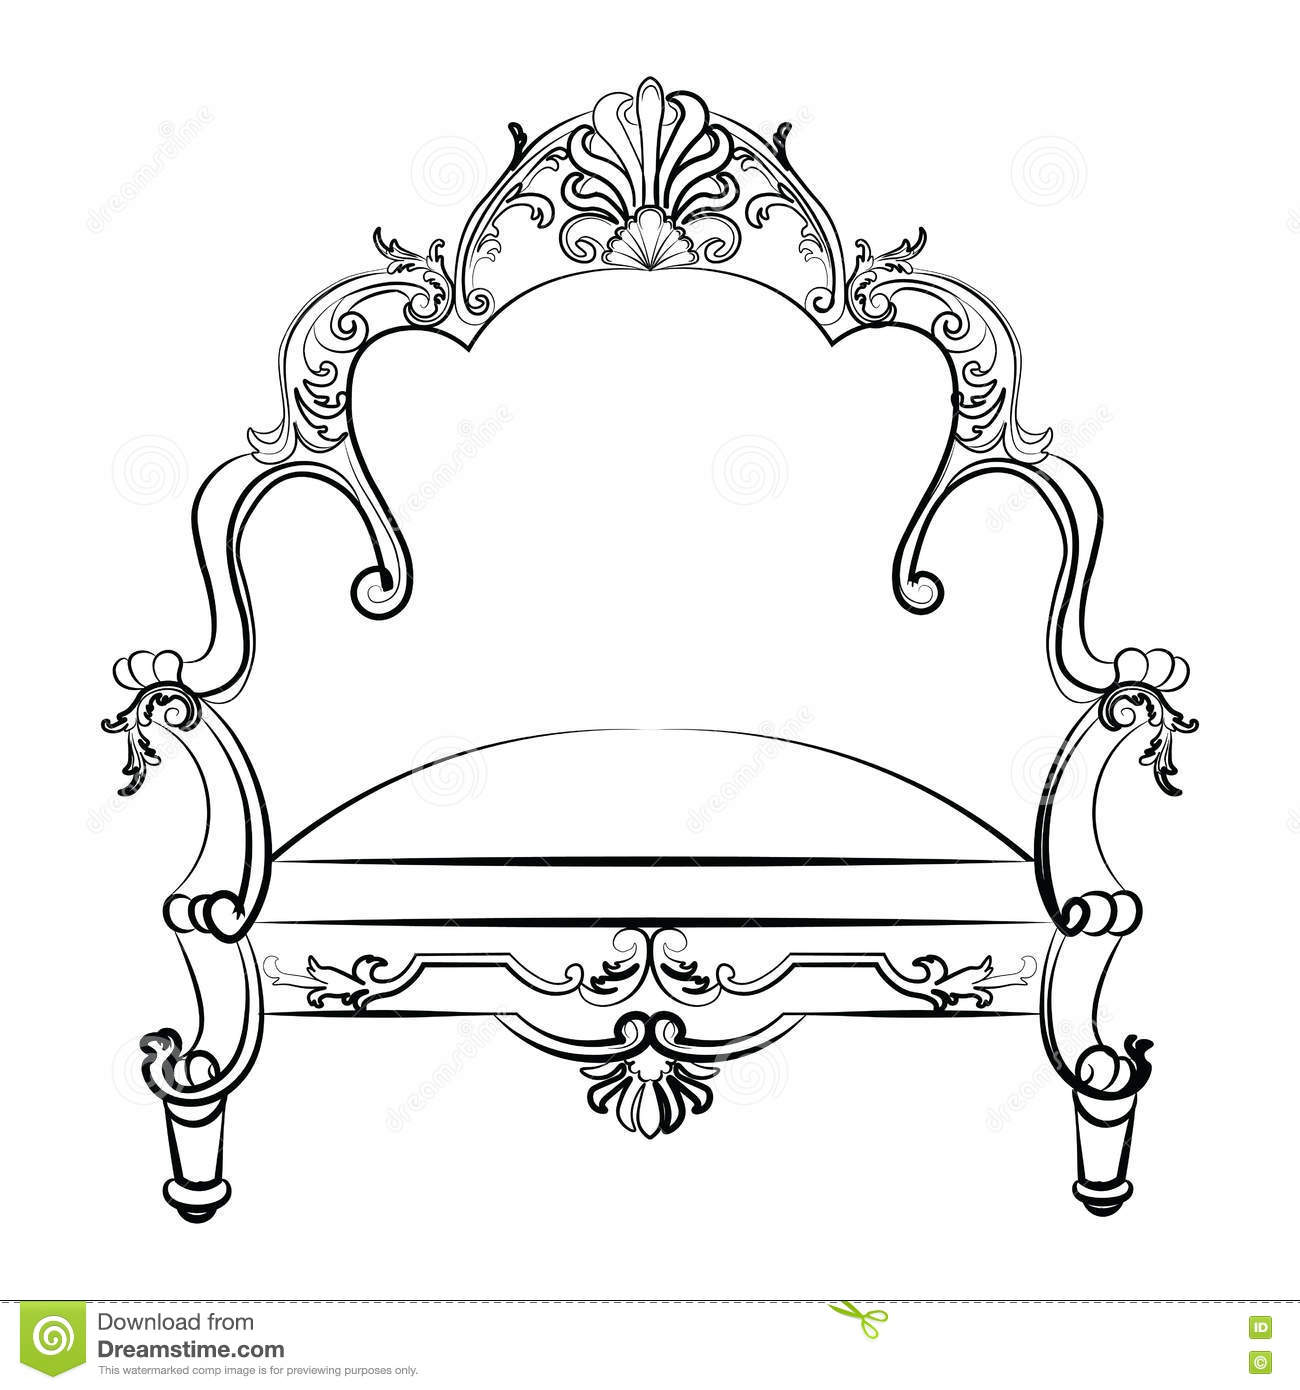 Fauteuil Rococo Stock Illustrations Vecteurs Clipart 347 Stock Illustrations